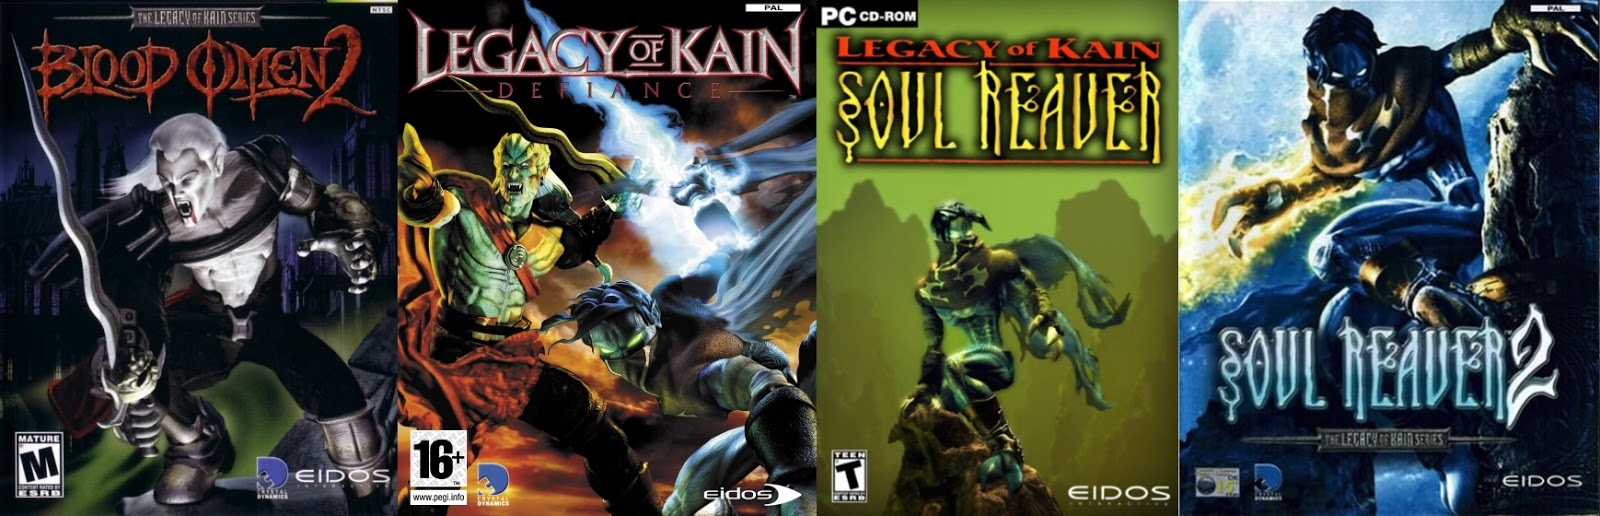 Legacy of Kain Collection Download Poster